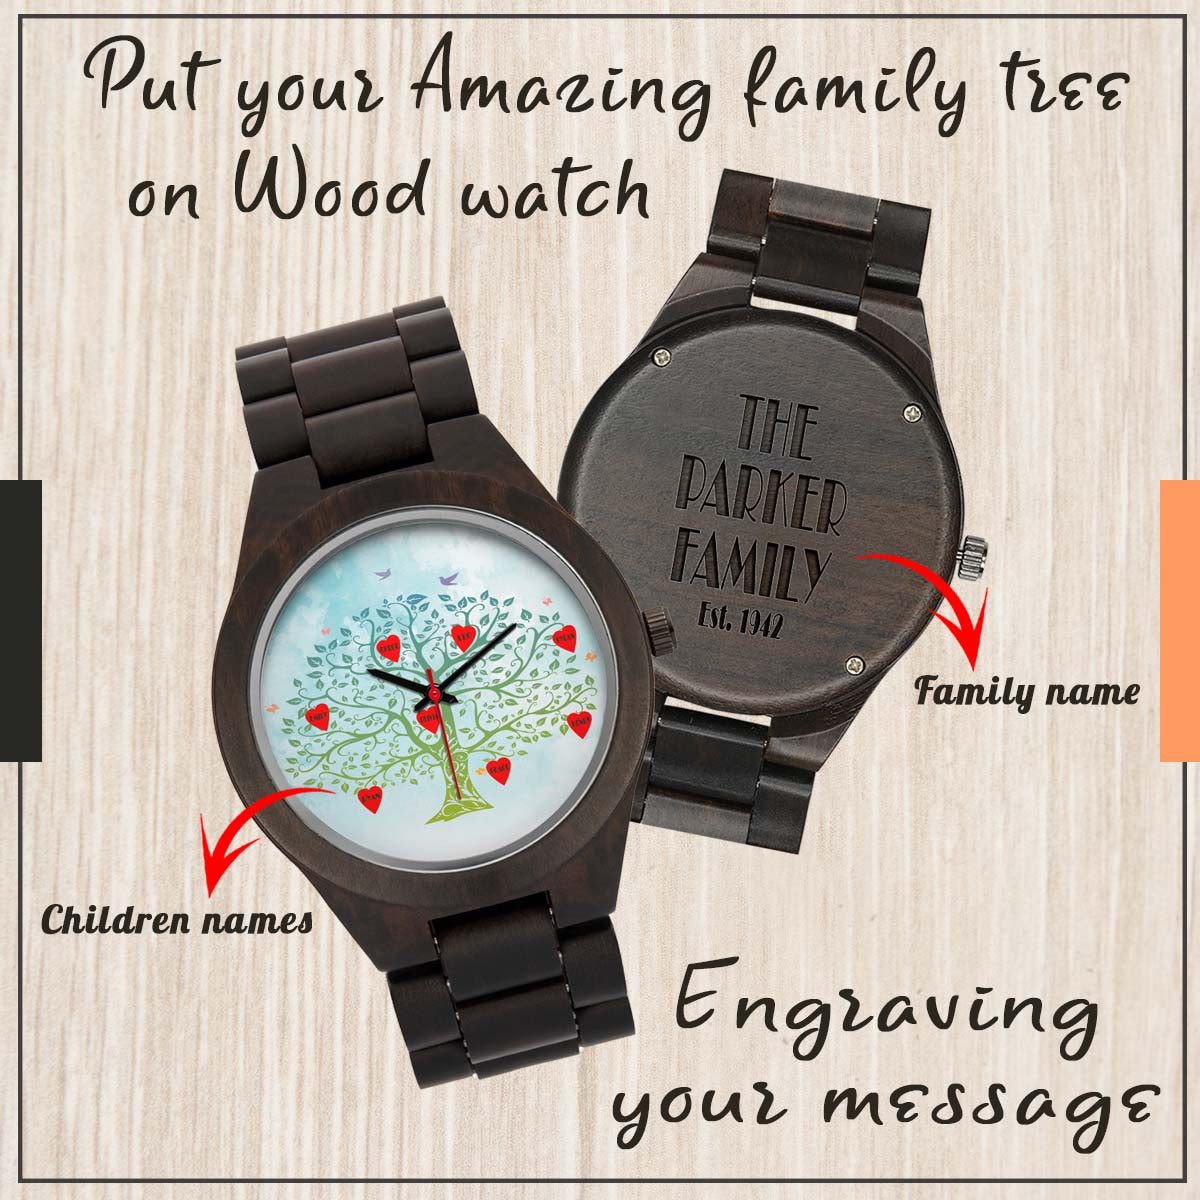 PERSONALIZED WOOD WATCH - CREATE YOUR OWN WOOD WATCH WITH YOUR FAMILY TREE